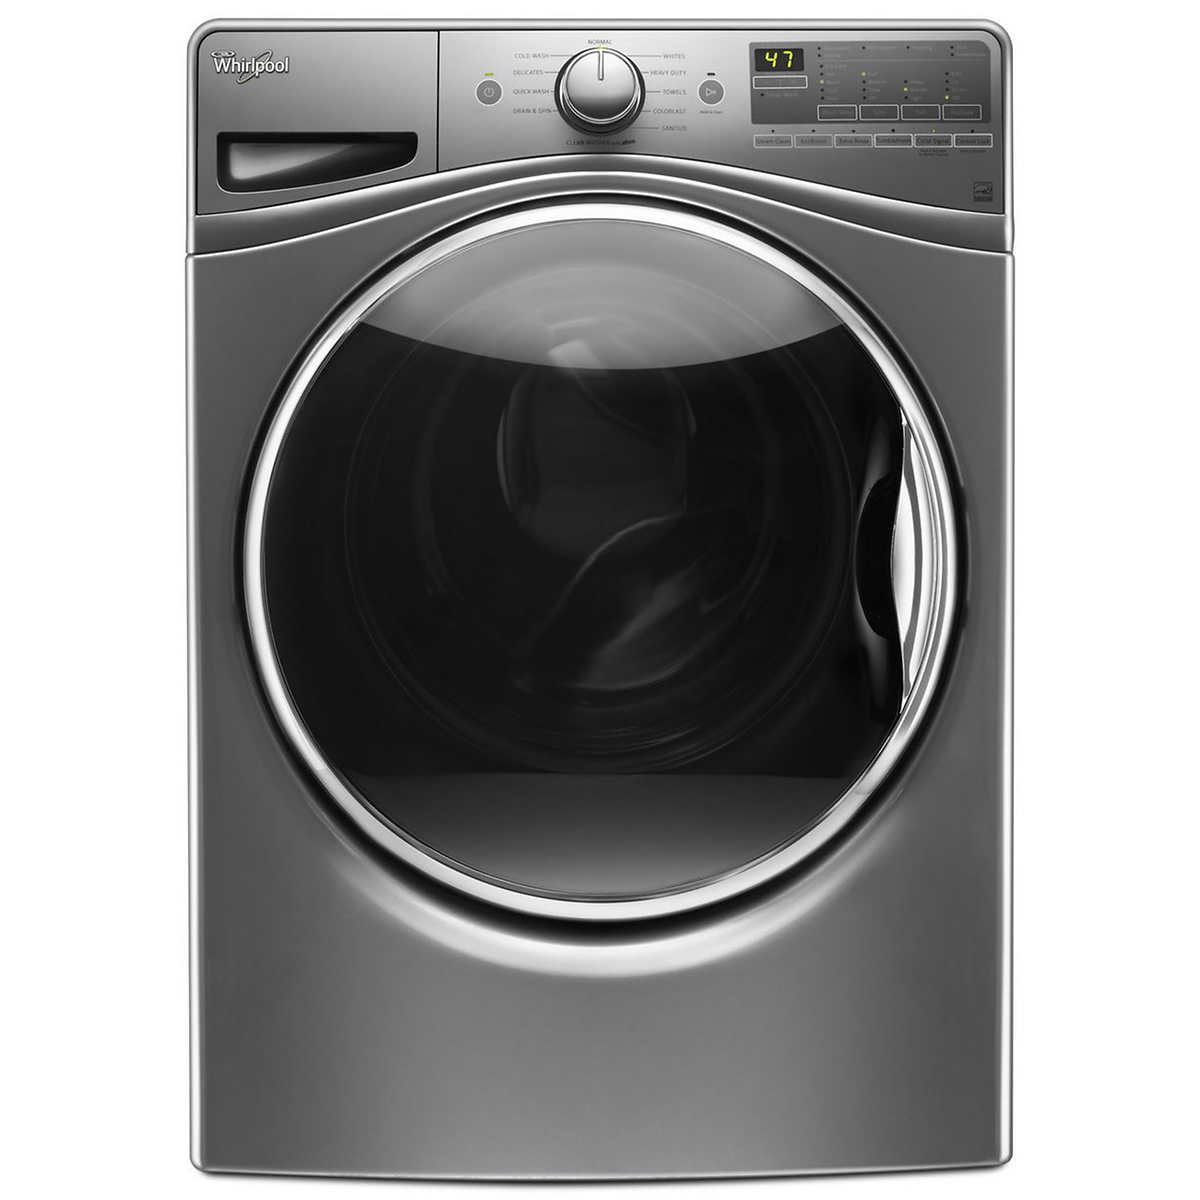 Samsung 5.0CuFt Front Load Washer with Self Clean + in Black Stainless Steel